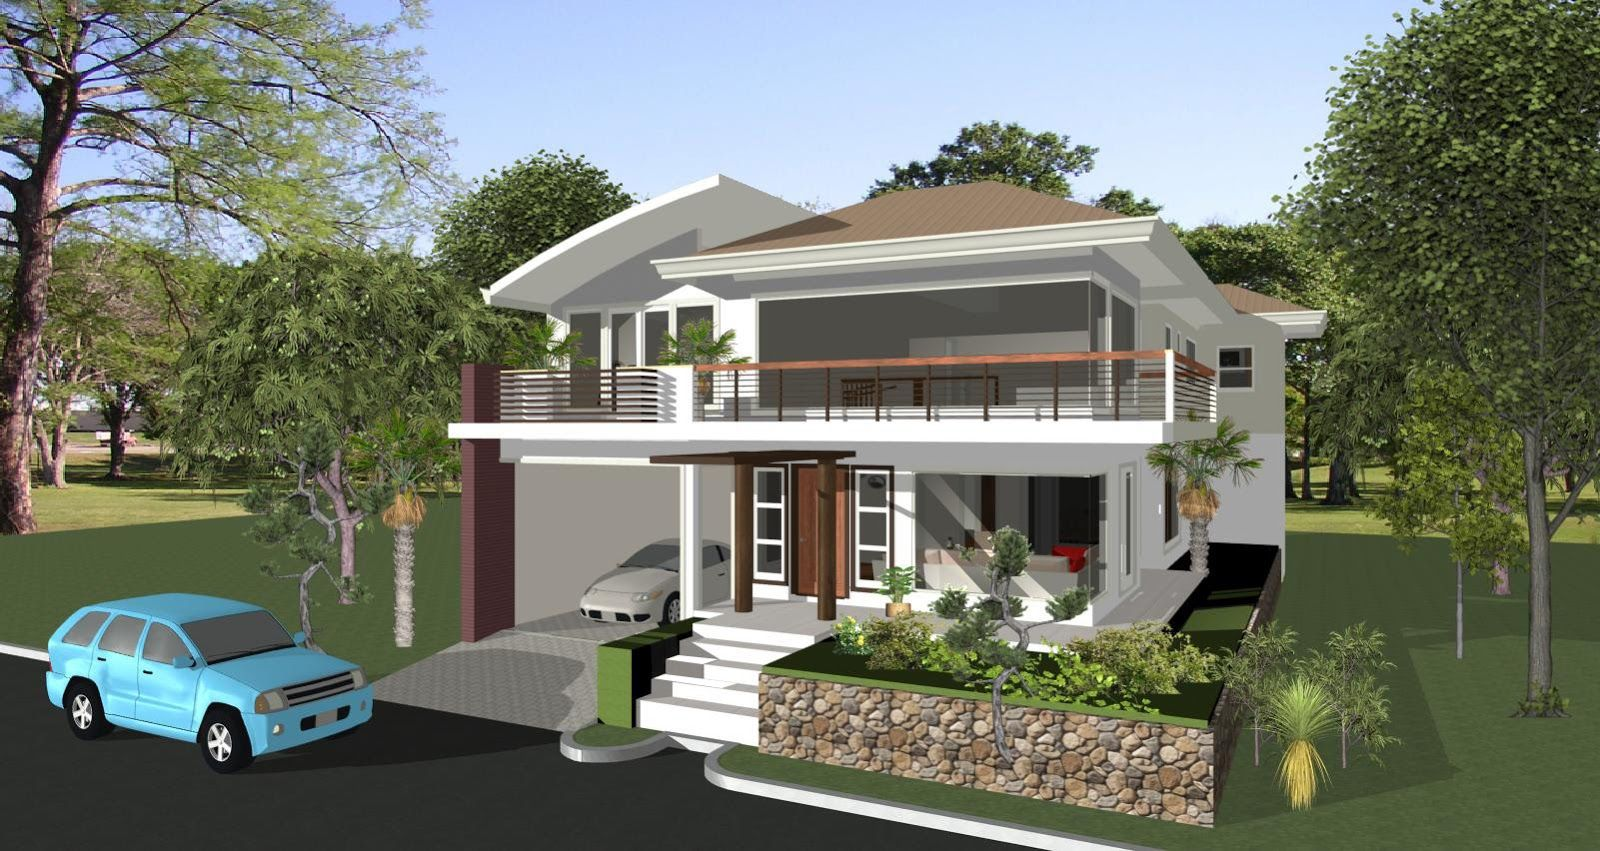 house designs iloilo philippine home designs philippines house ...